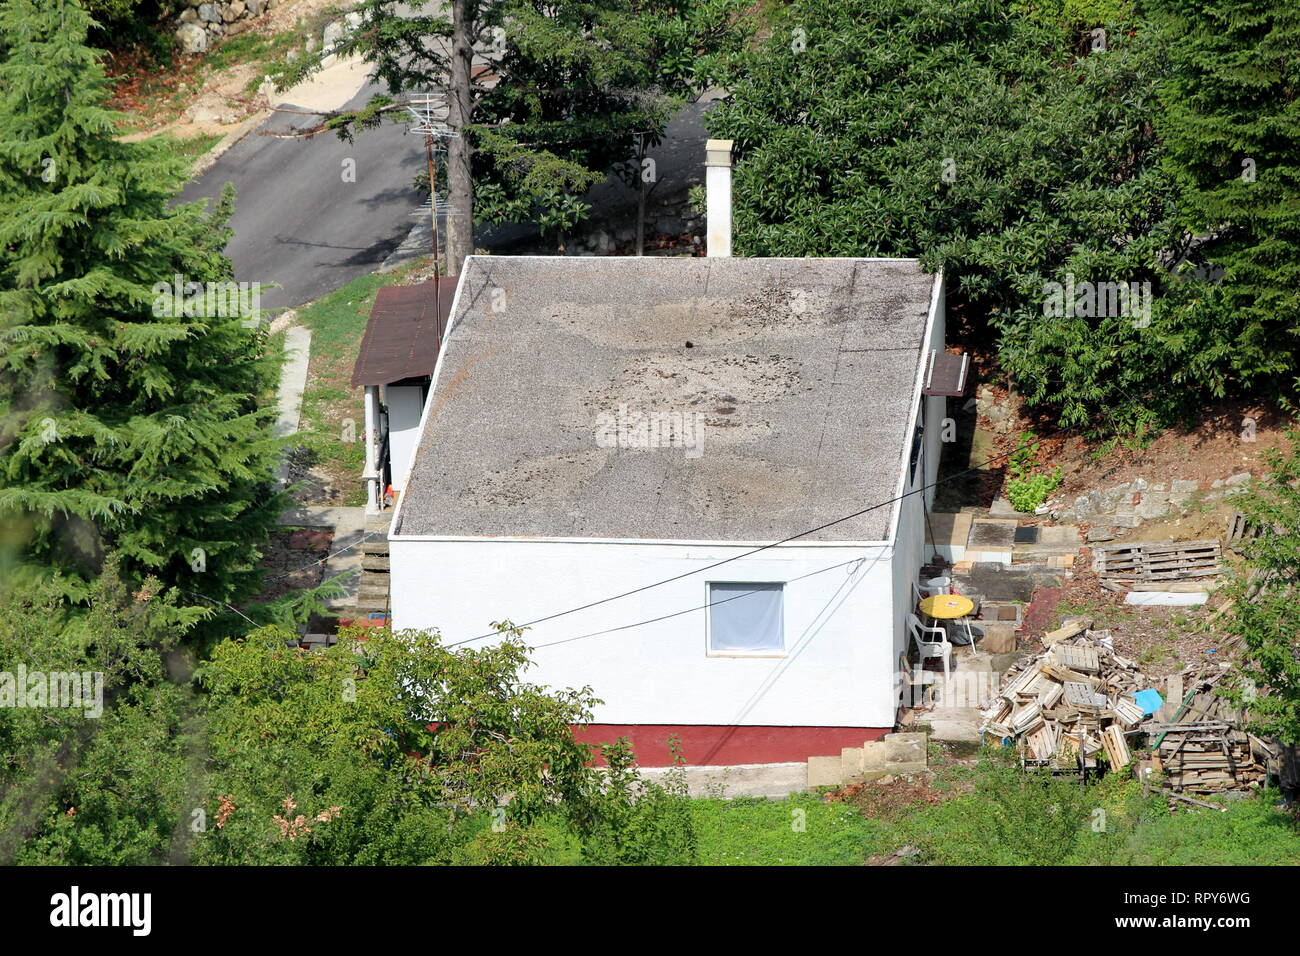 Top View Of Small Ground Floor Family House With Flat Roof And Construction Material In Backyard Surrounded With Dense Forest And Paved Road Stock Photo Alamy